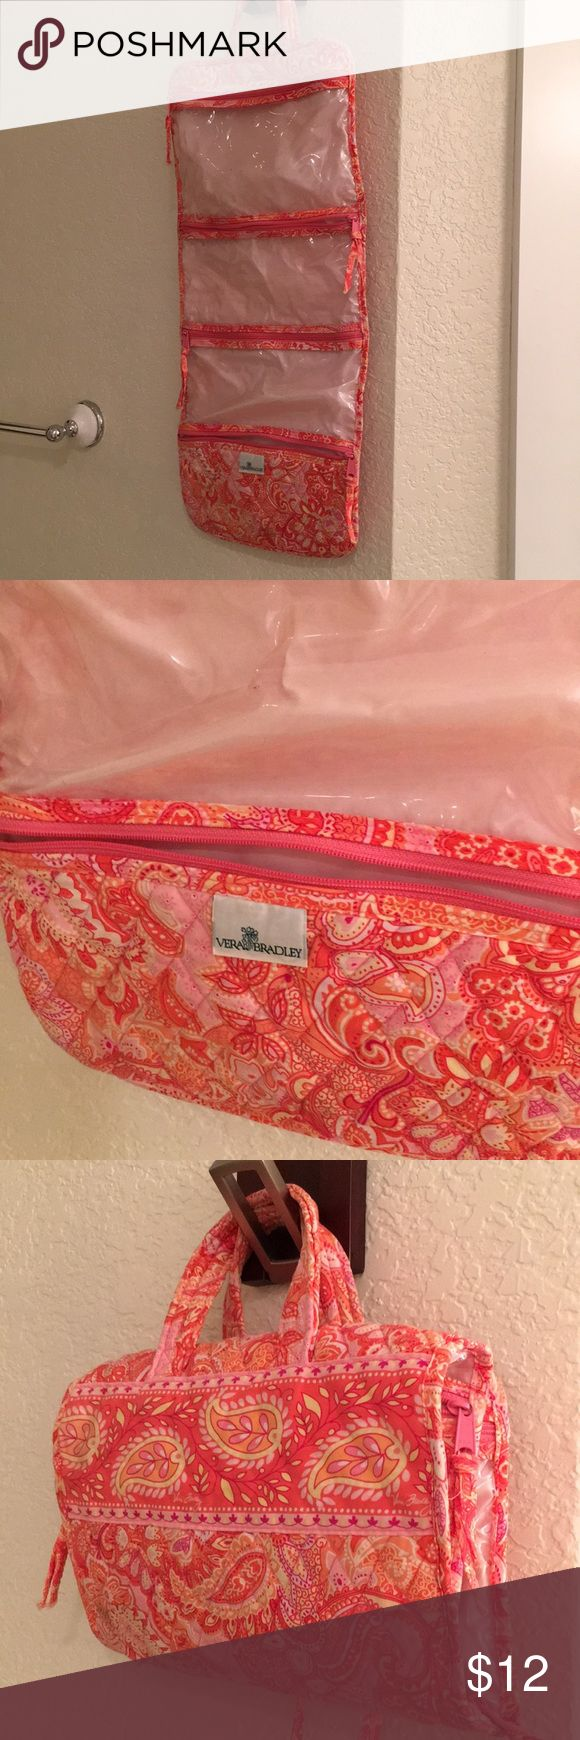 Coral pink Vera Bradley travel toiletries case Some marks on the inside plastic that I'm sure will come off if you took soap to it. Vera Bradley travel case with four different pouches/compartments. Vera Bradley Bags Travel Bags